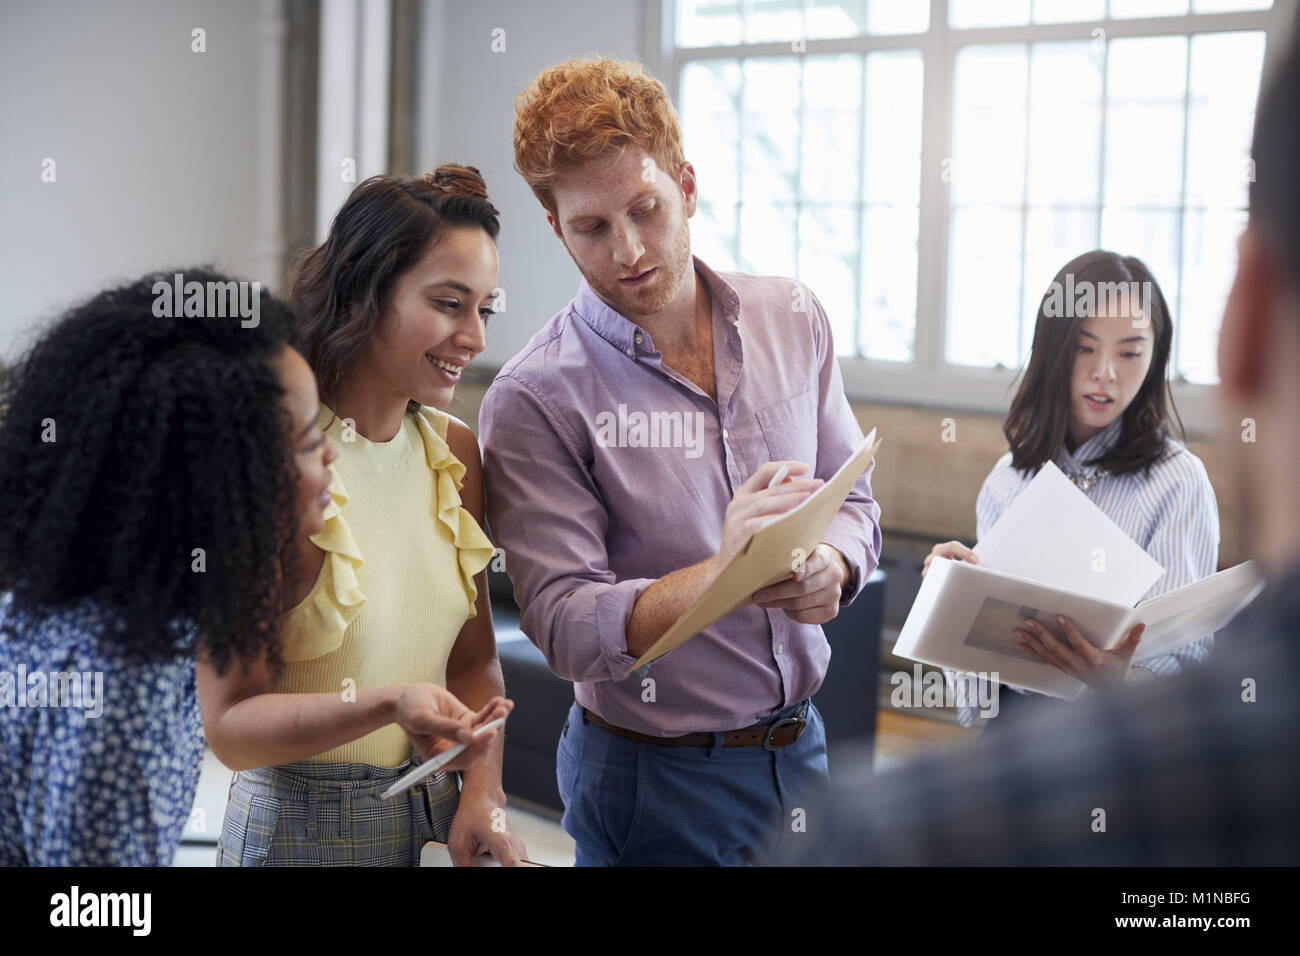 Young creatives discussing brainstorm ideas, close up - Stock Image